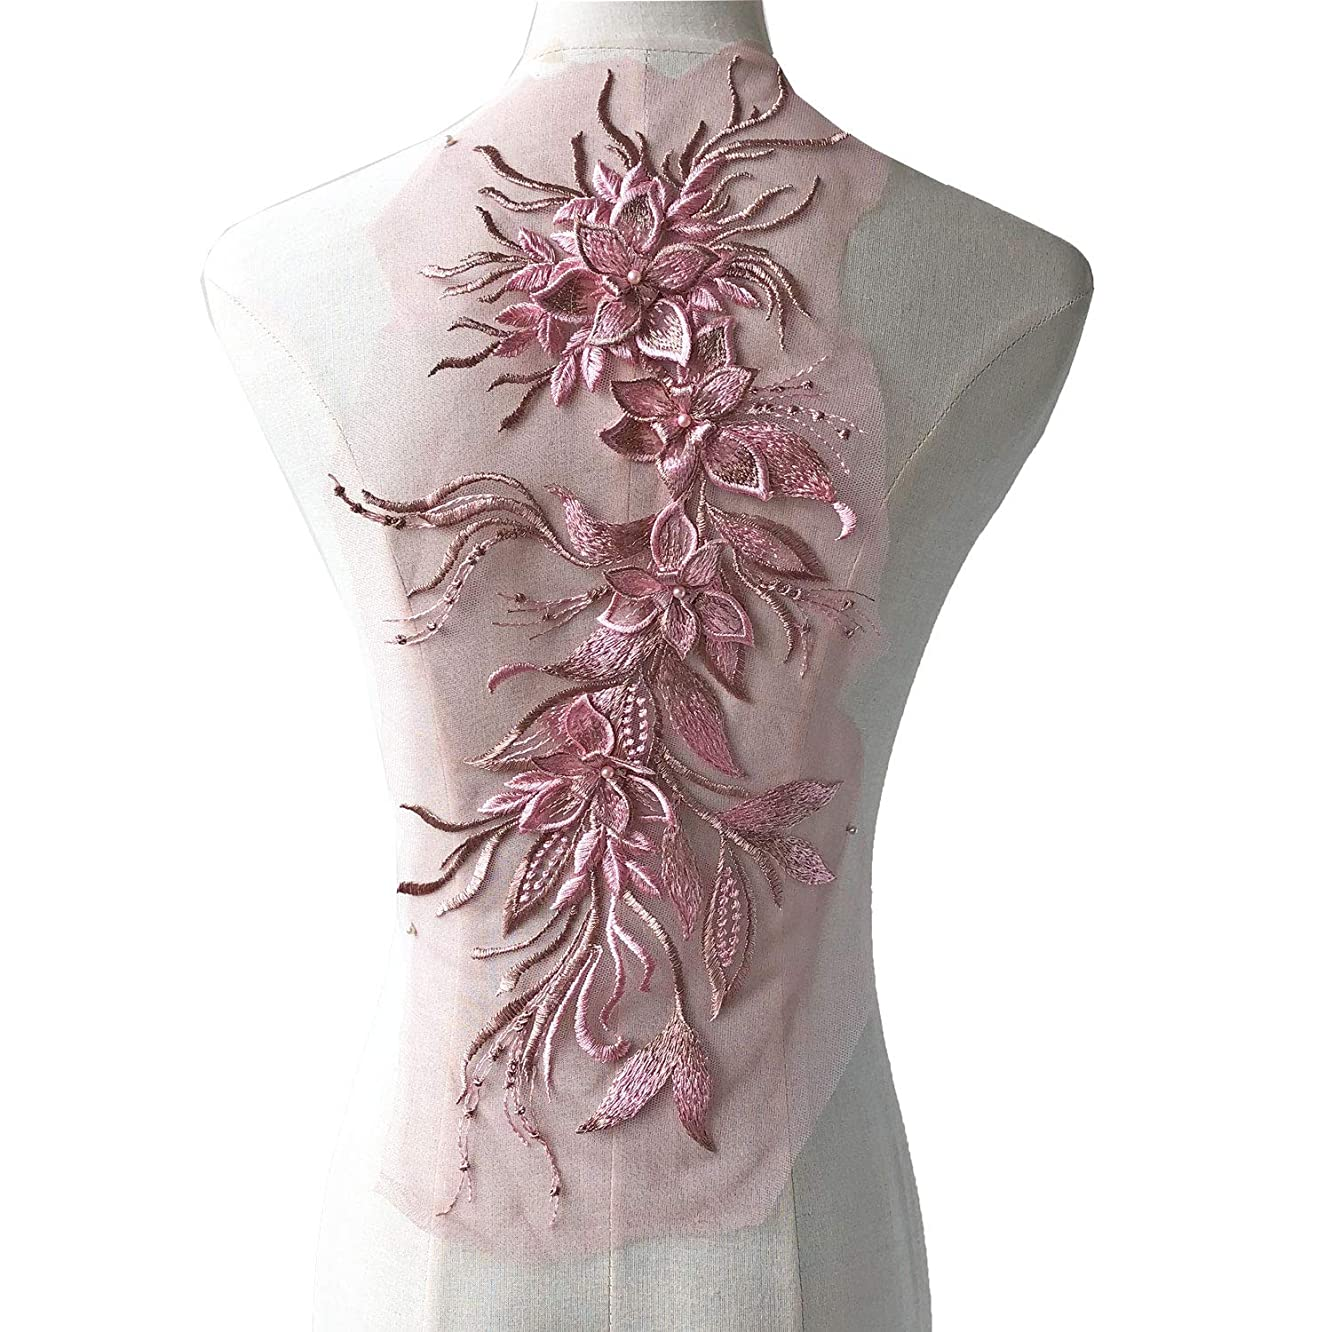 Delicate Floral Lace Patch Embroidery Beading Flower Vines Applique for Prom Ballgown Party Costumes Dusky Pink Color